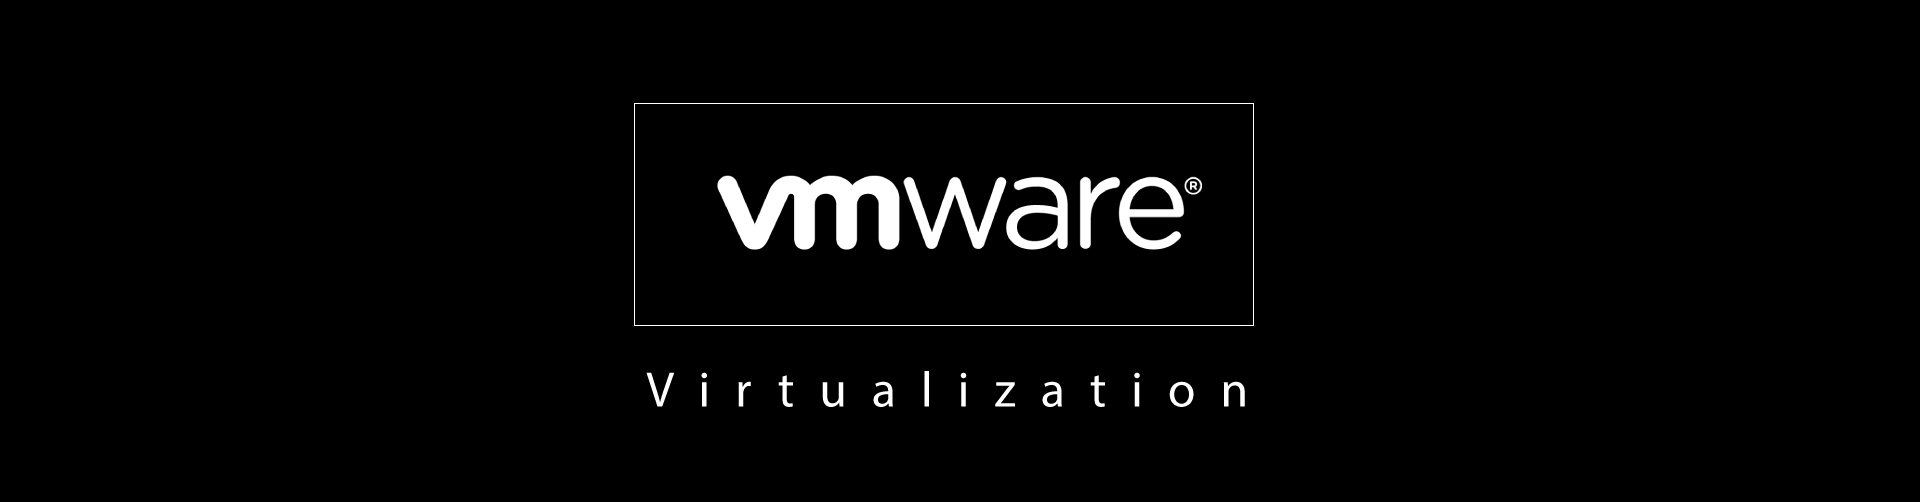 Virtualization6